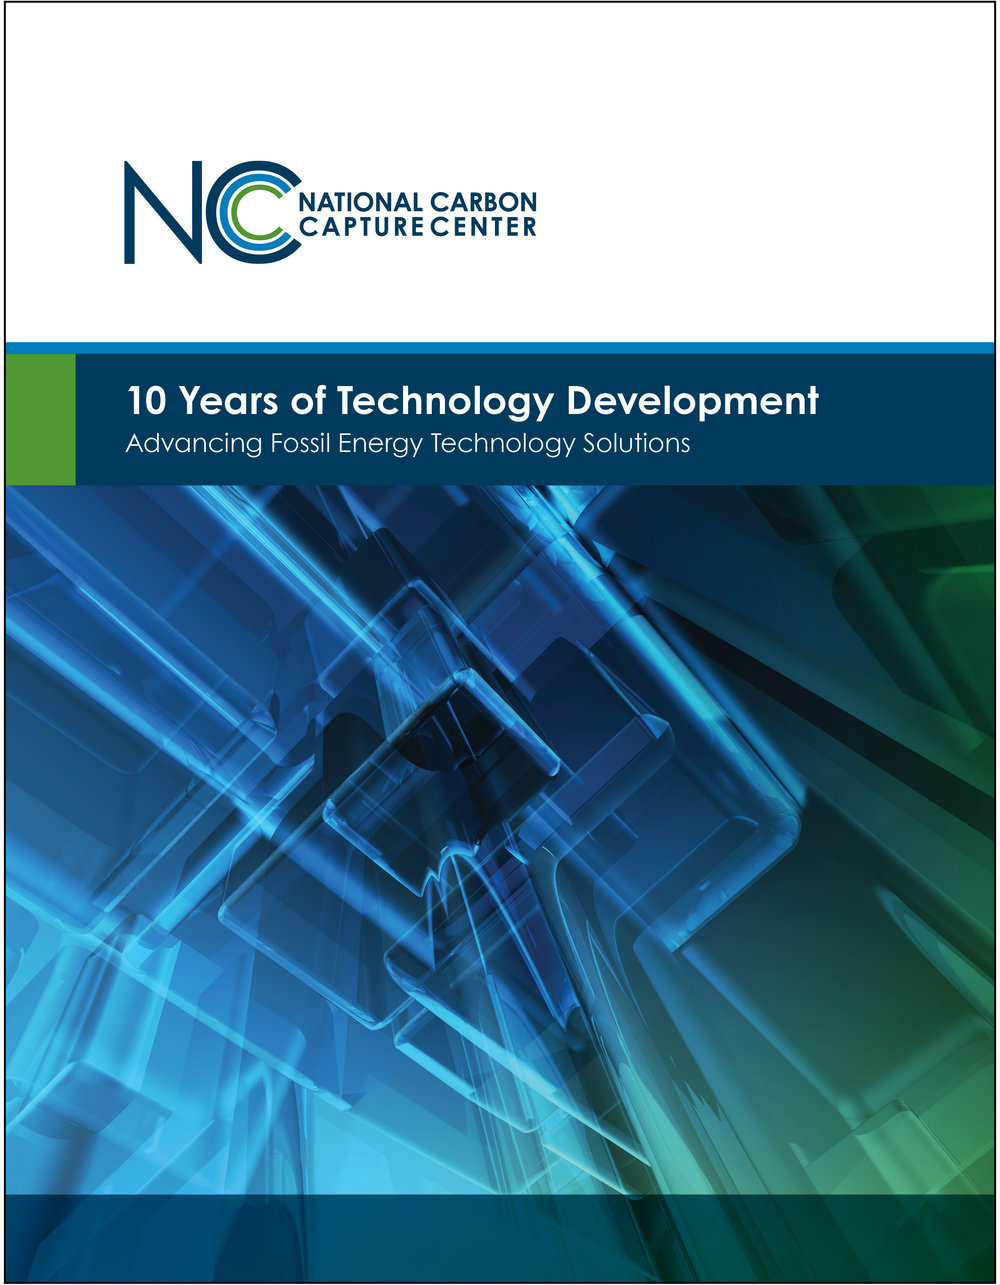 Read a summary of the National Carbon Capture Center's work over the last decade.